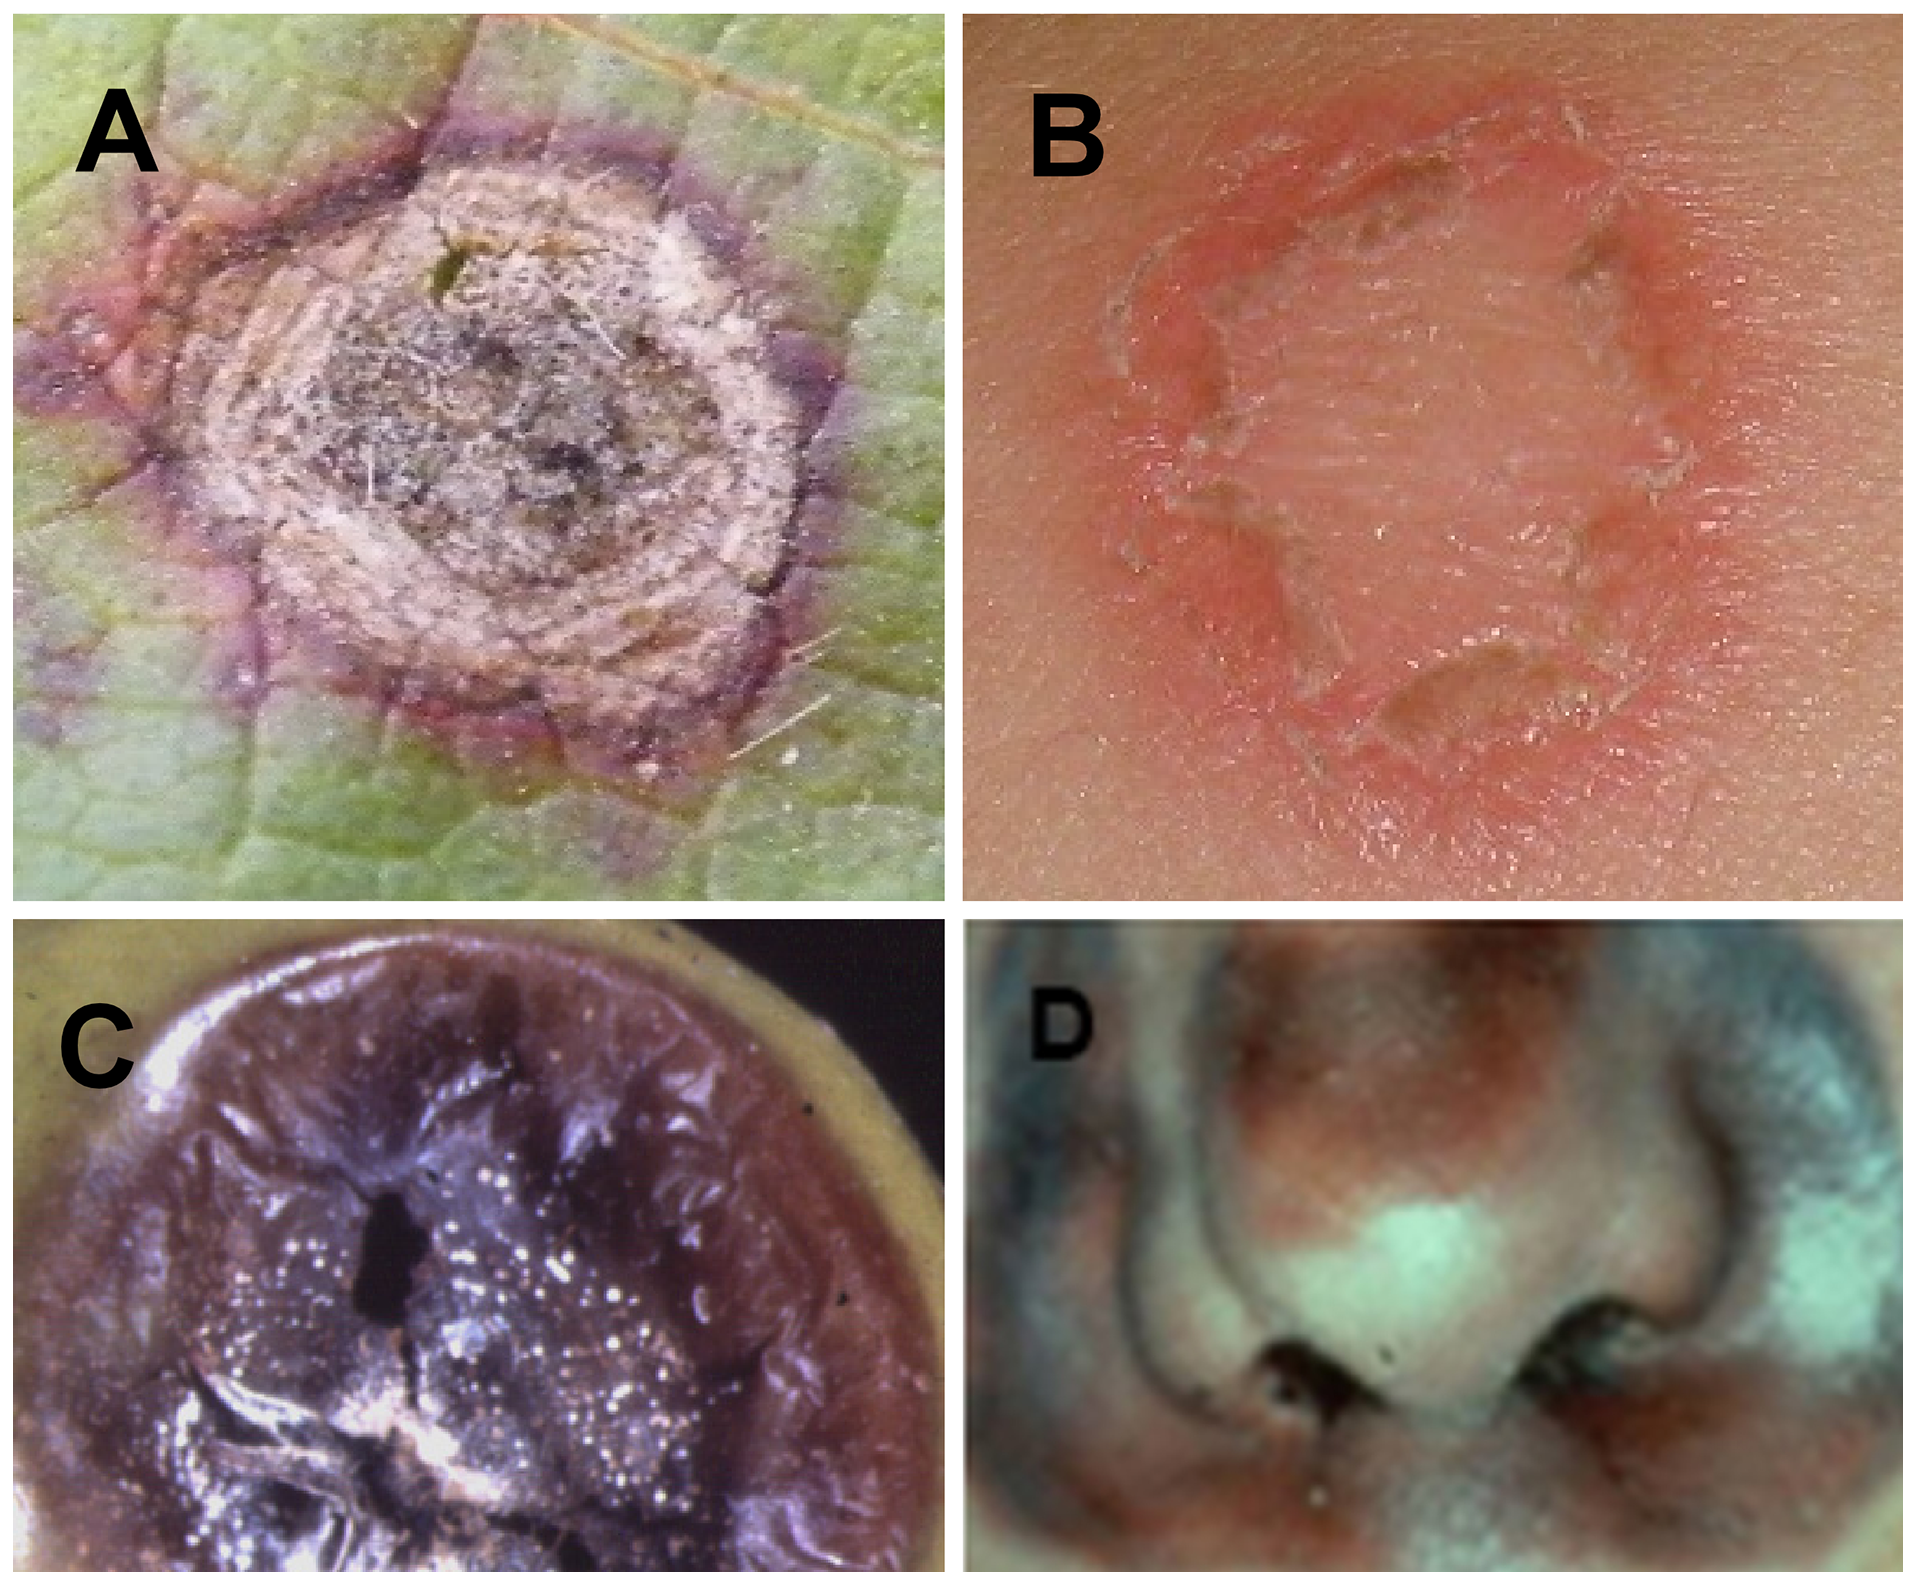 Similar symptoms caused by fungal pathogens on plants and humans.